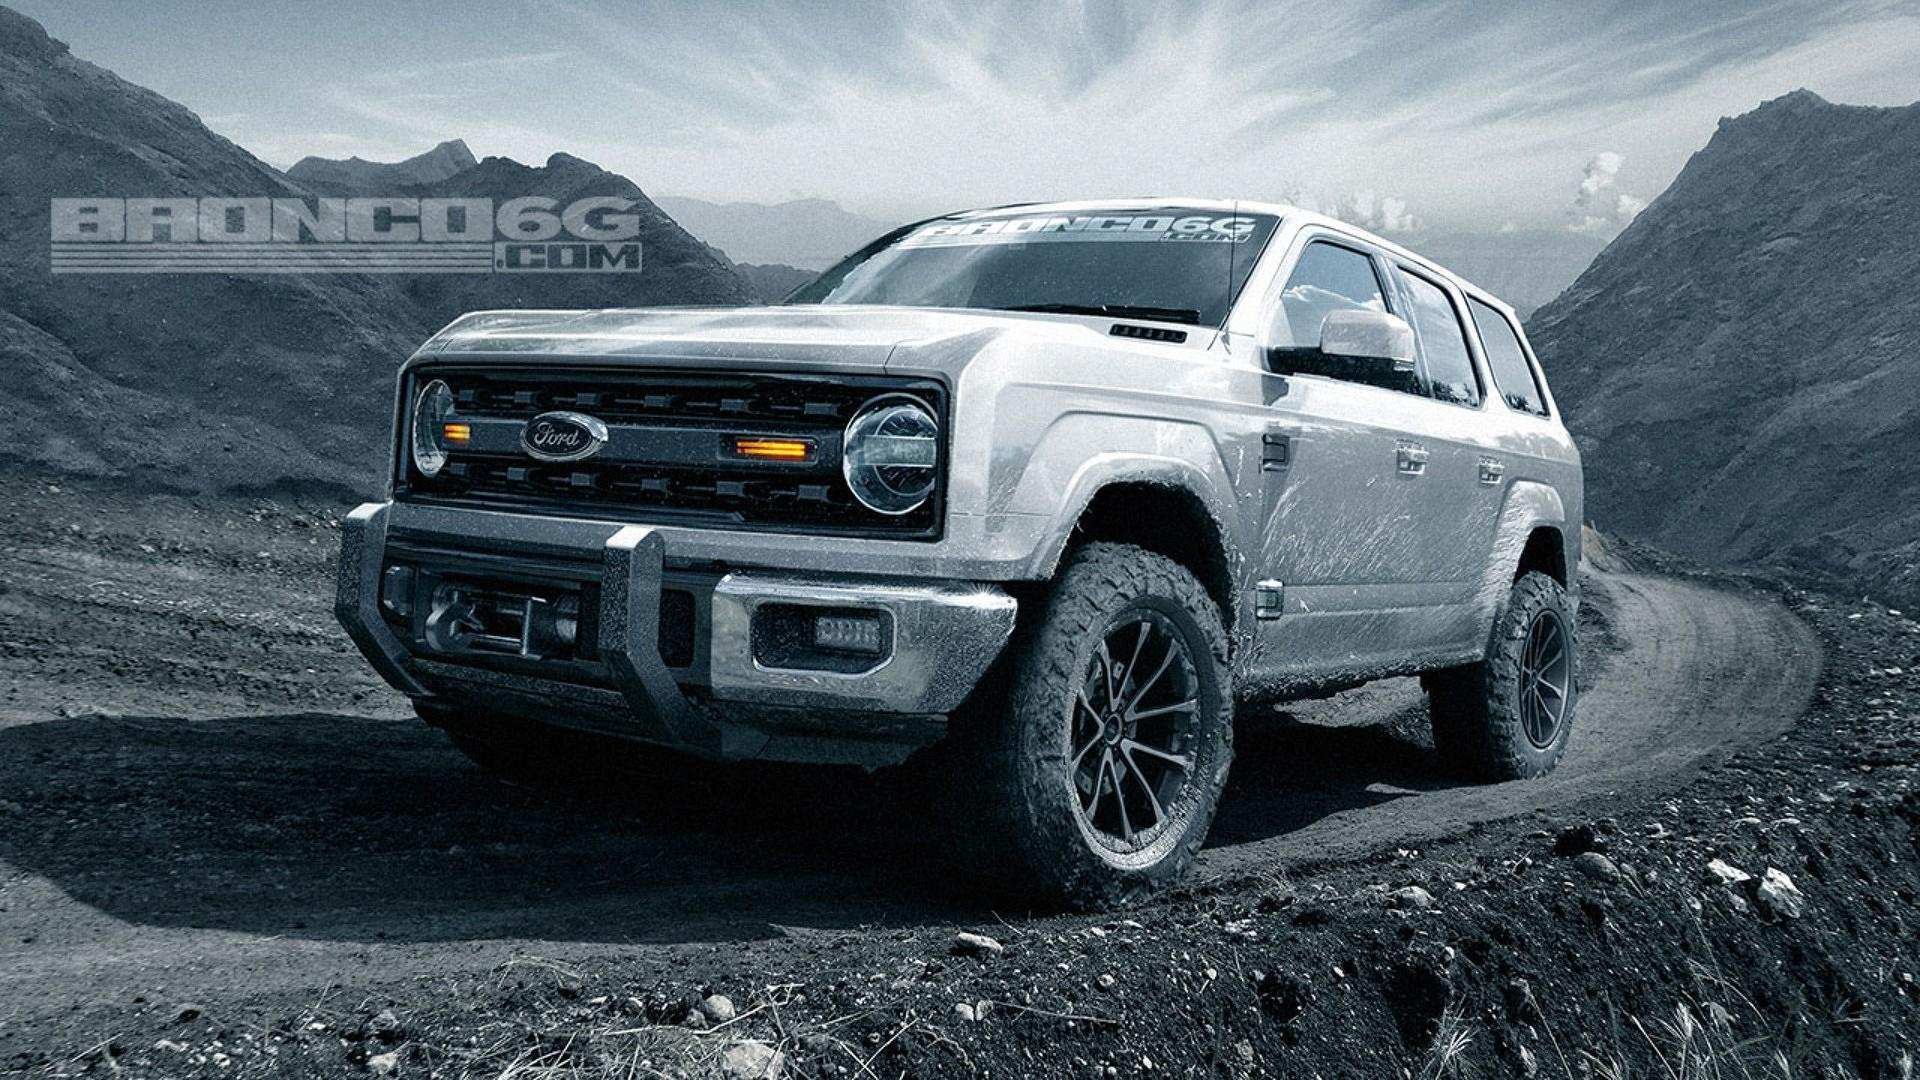 24 All New 2020 Ford Bronco With Removable Top Images